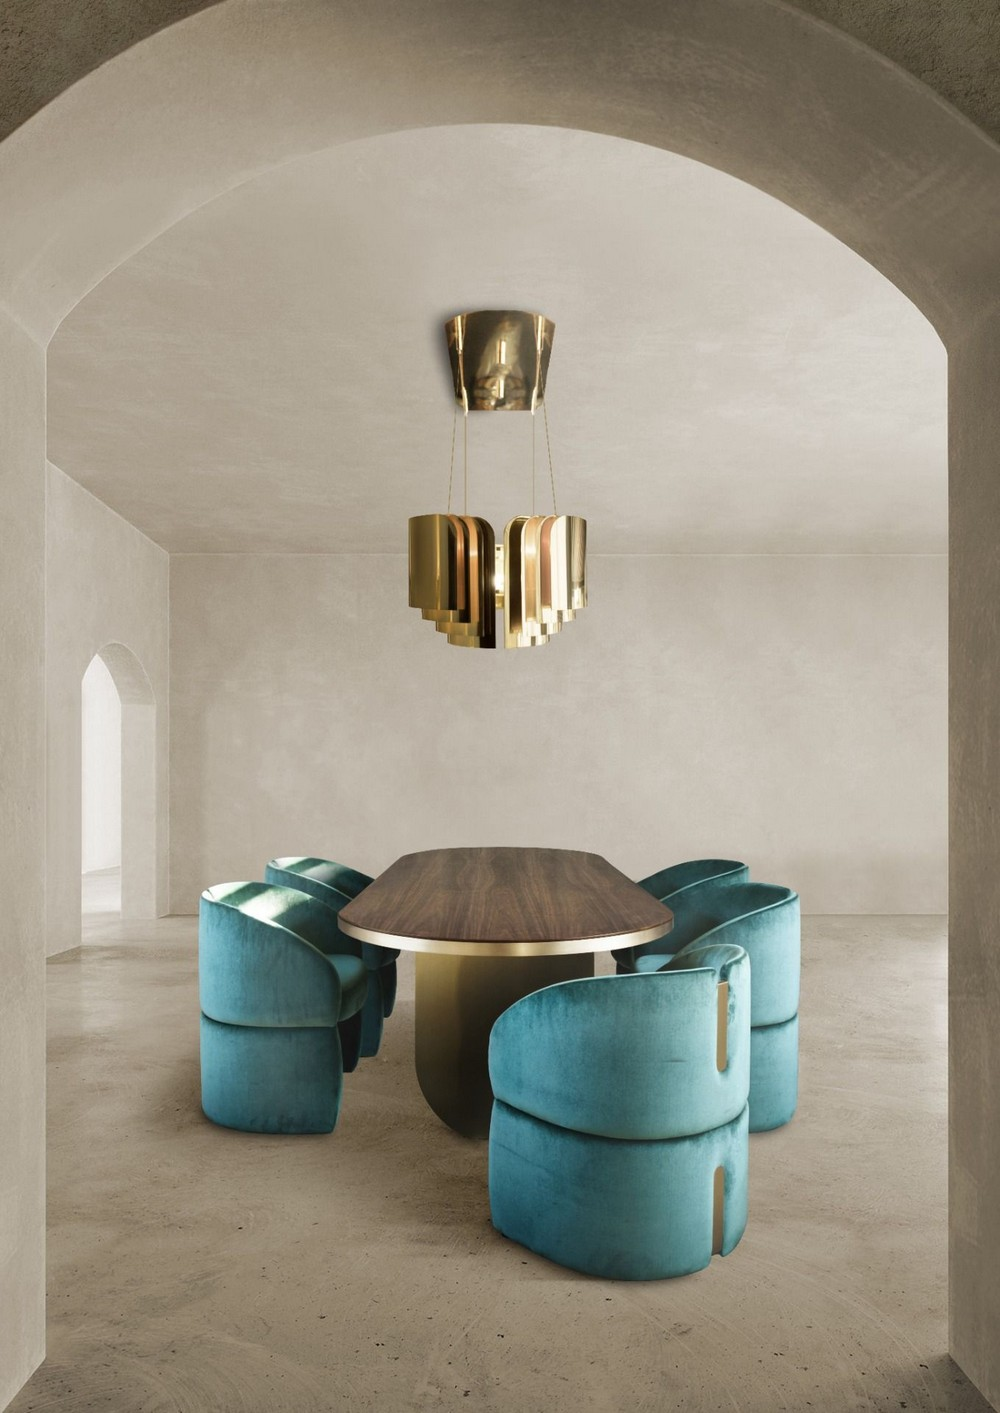 2020 In Retrospective: The Best Dining Tables and Chairs dining tables 2020 In Retrospective: The Best Dining Tables and Chairs v9D8xCcQ